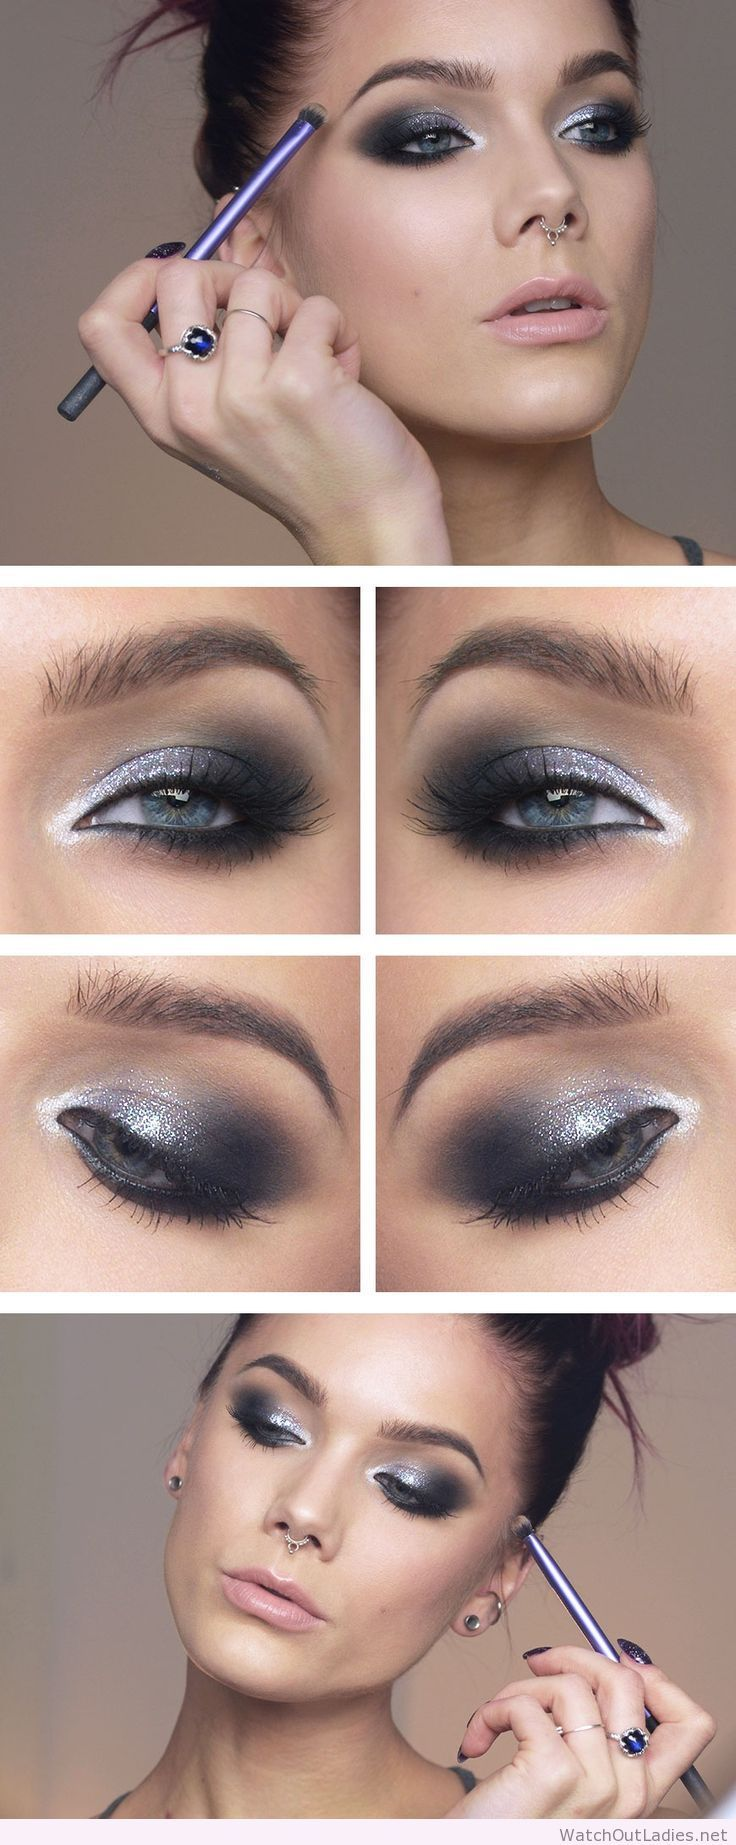 White dress eye makeup - Linda Hallberg Silver And Black Eye Makeup Love This Classic Evening Look Looks Great